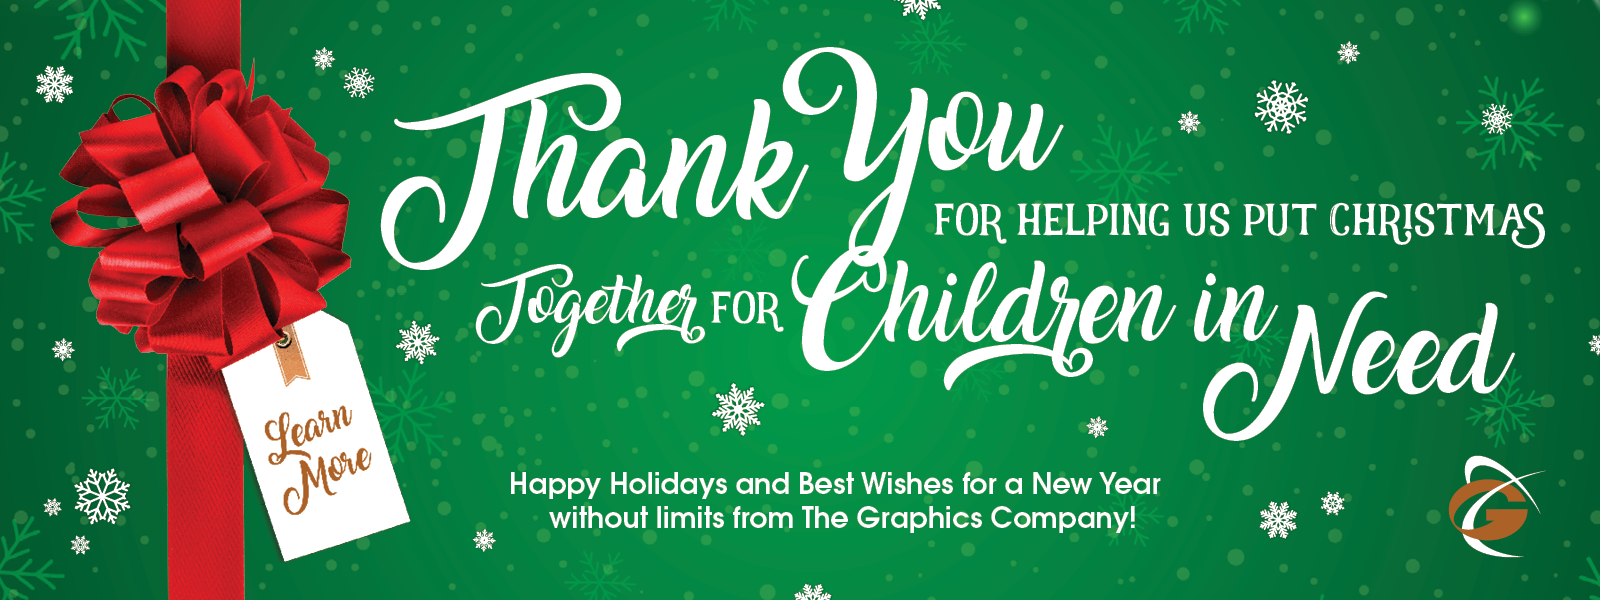 Thank You for Helping Us Put Christmas Together for Children in Need